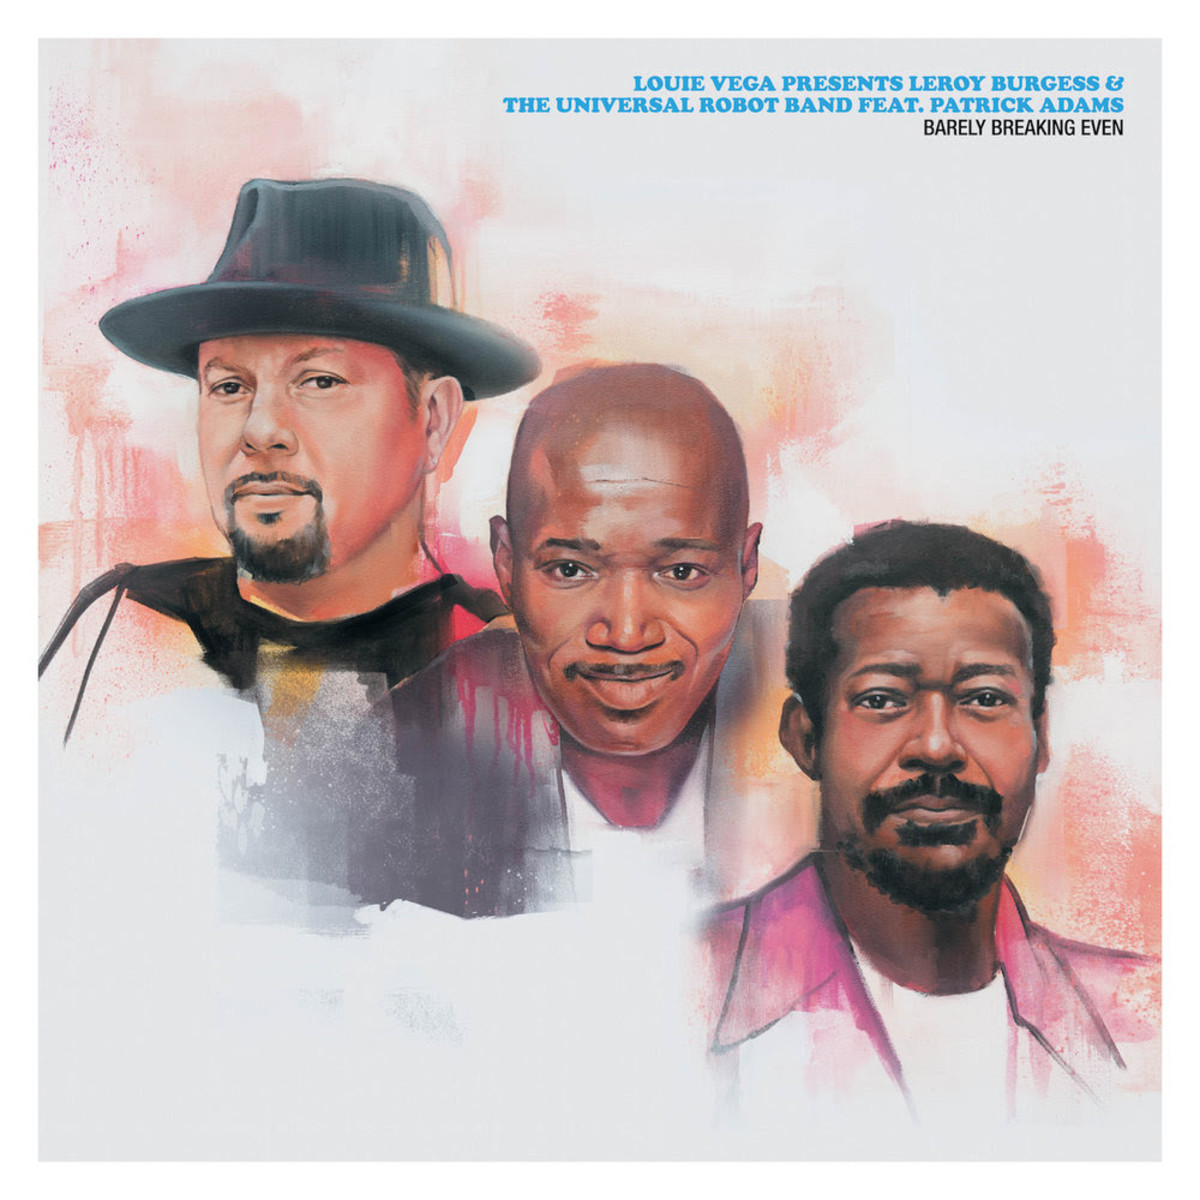 LOUIE VEGA PRESENTS LEROY BURGESS & THE UNIVERSAL ROBOT BAND FEAT. PATRICK ADAM – BARELY BREAKING EVEN